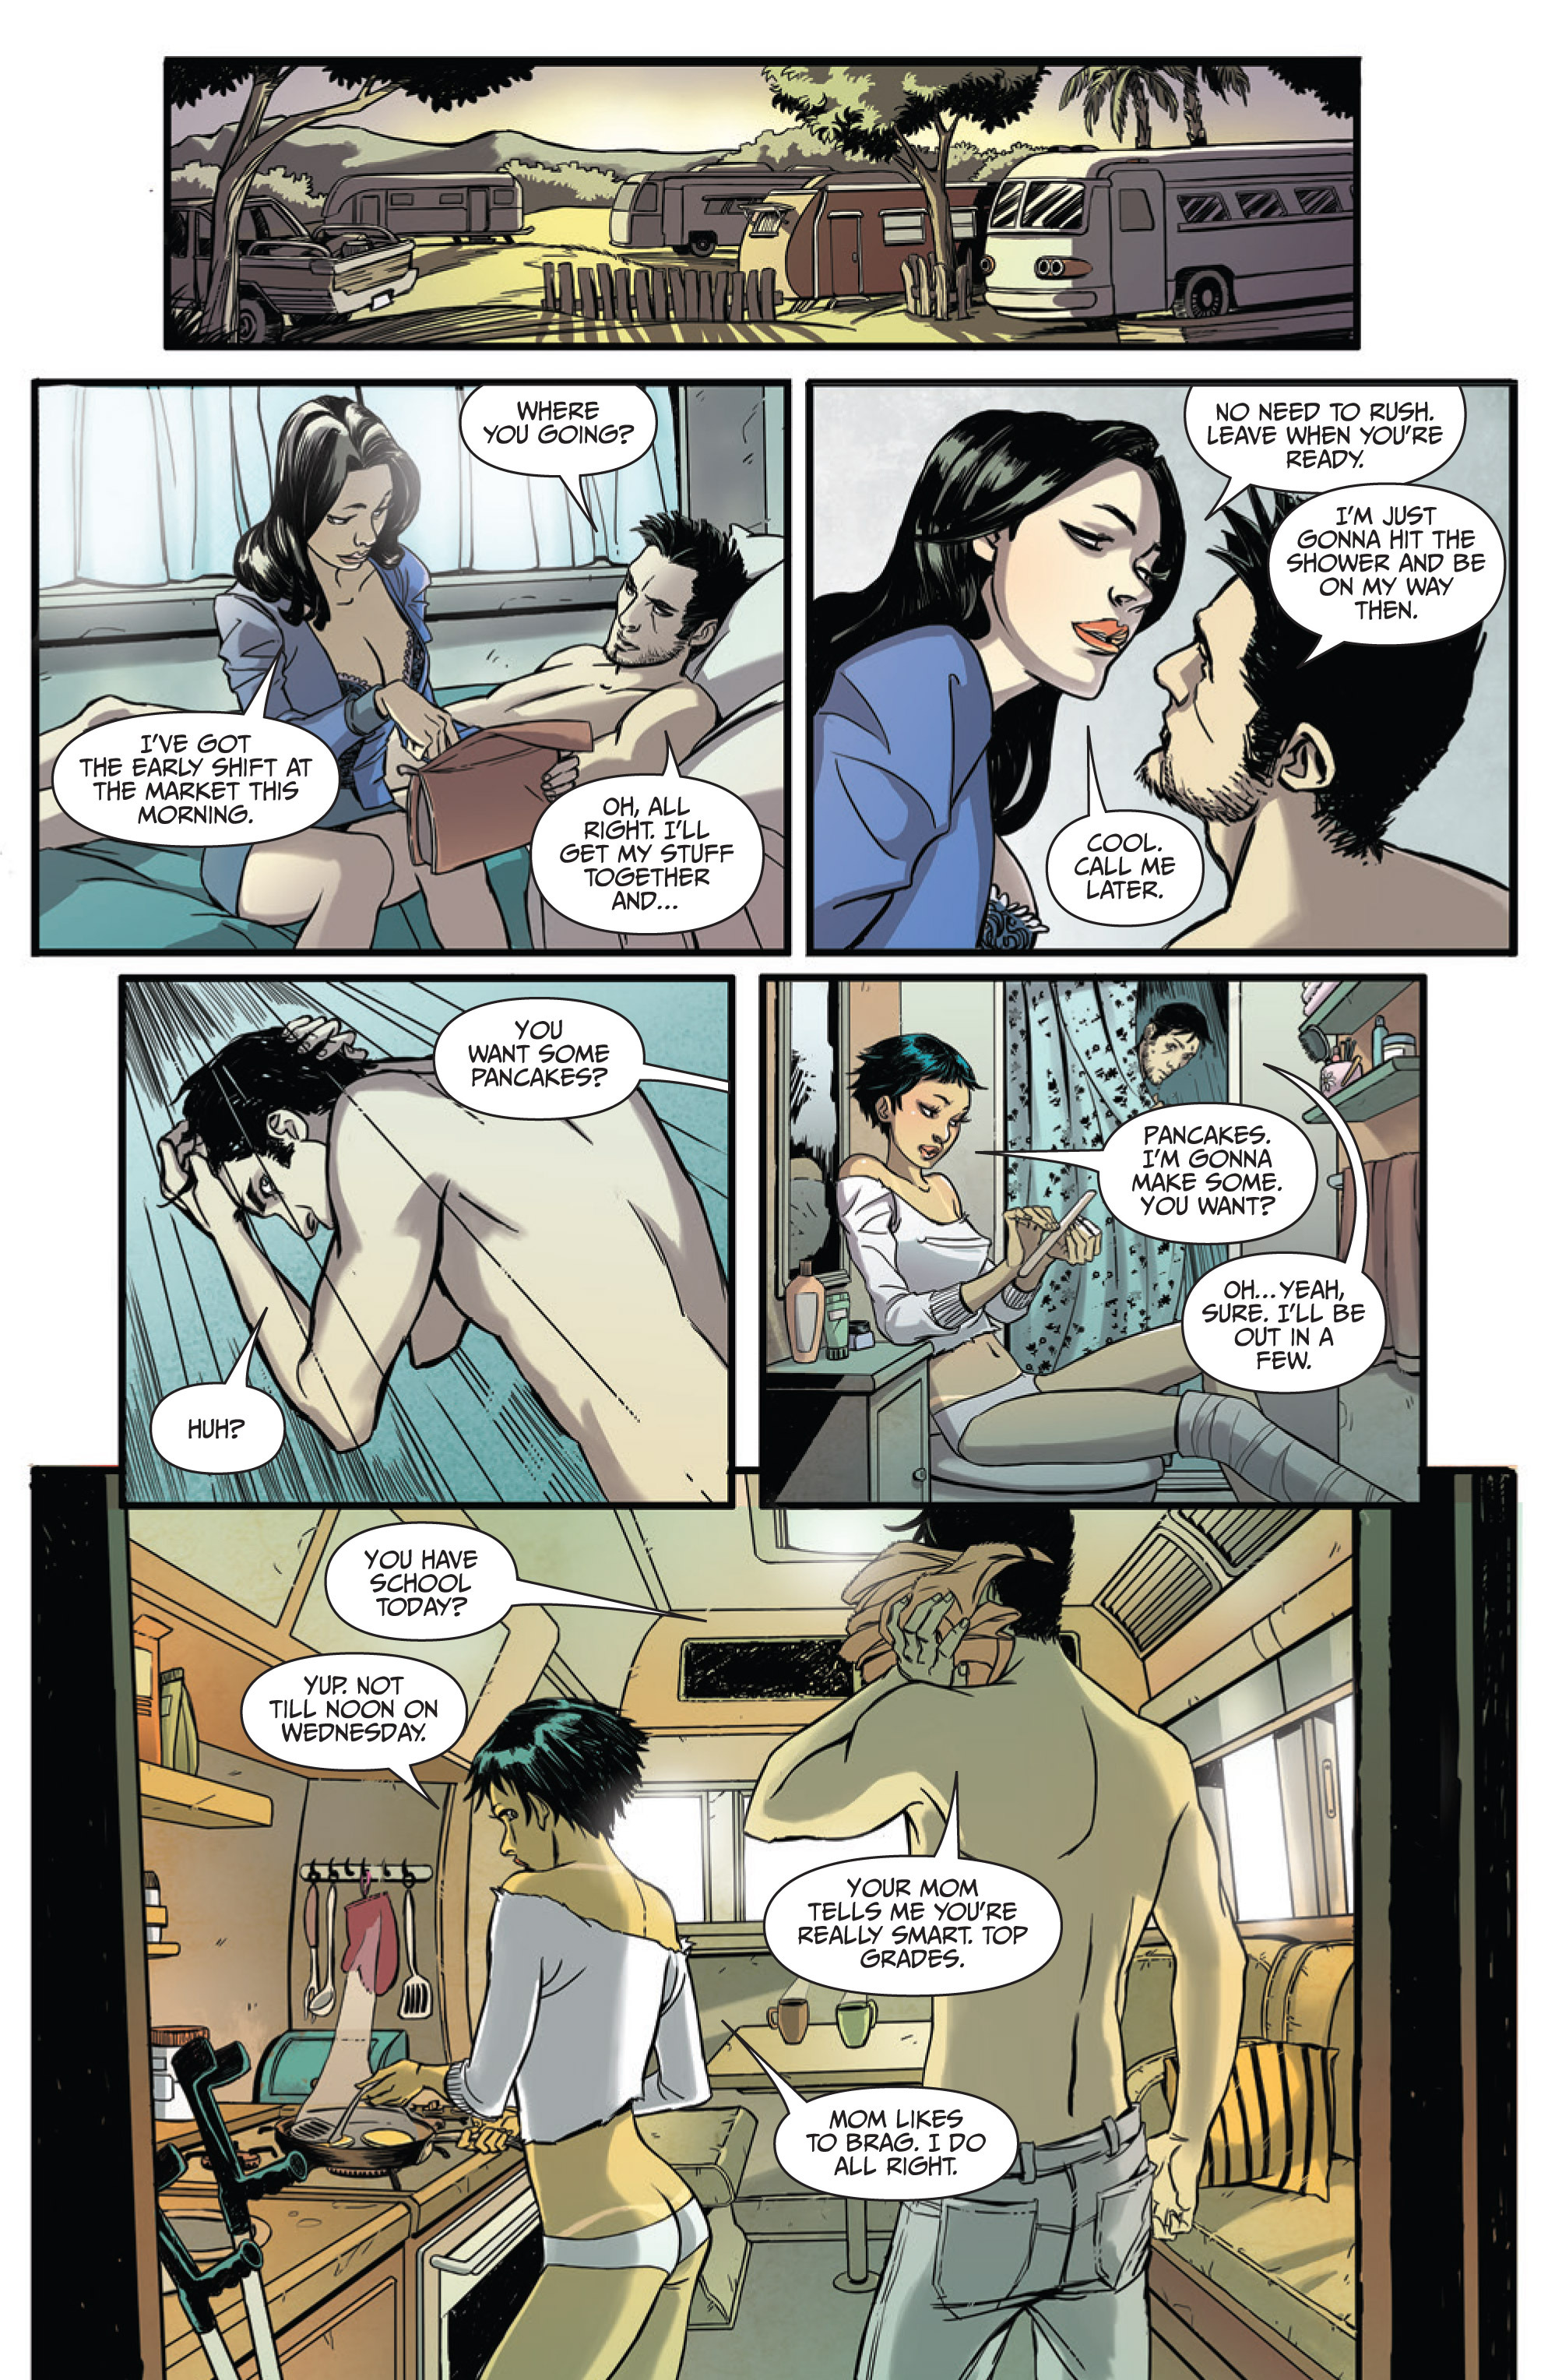 Read online Sex and Violence Vol. 2 comic -  Issue # Full - 6